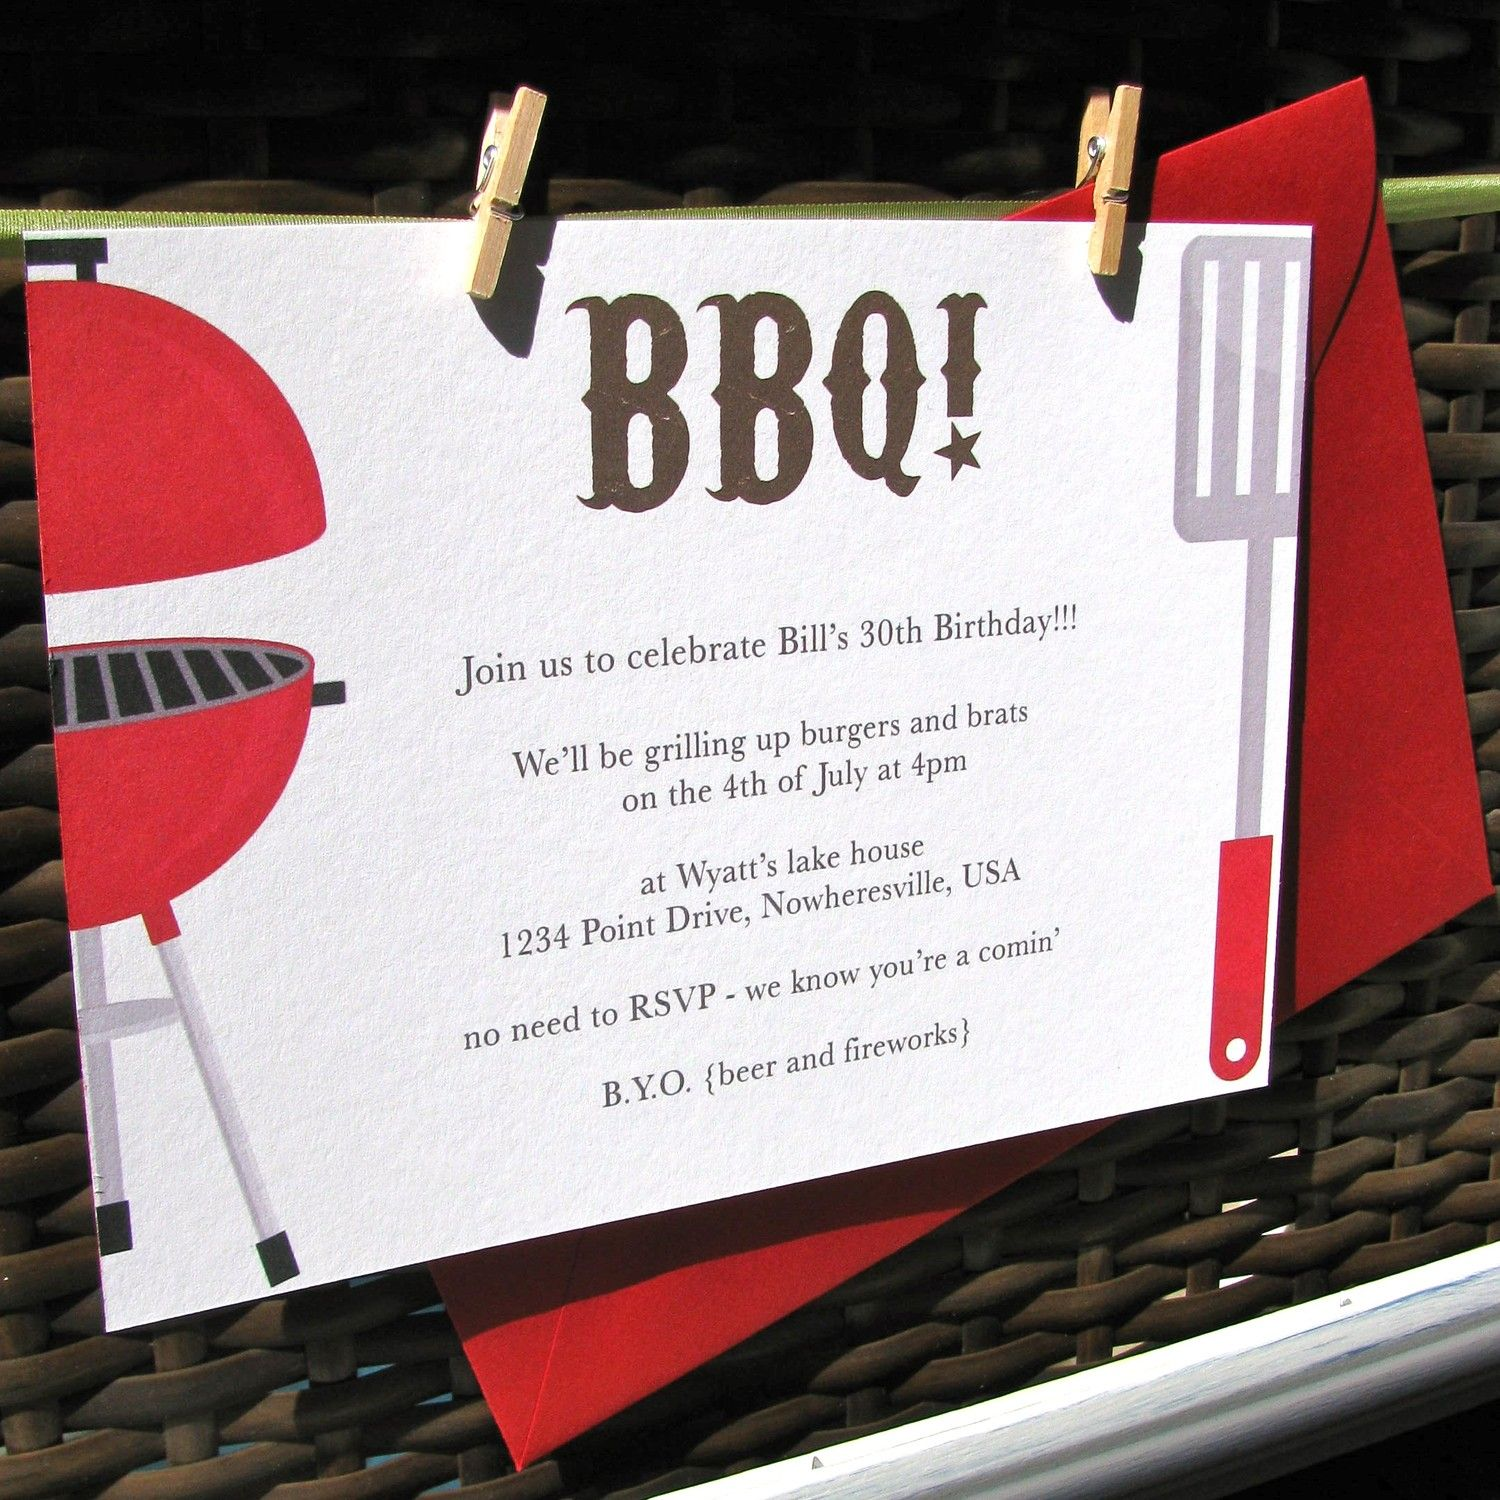 baby shower bbq invitation templates%0A  th of July BBQ party invitations  rehearsal dinner invitations  couple u    s shower  invitations on SALE